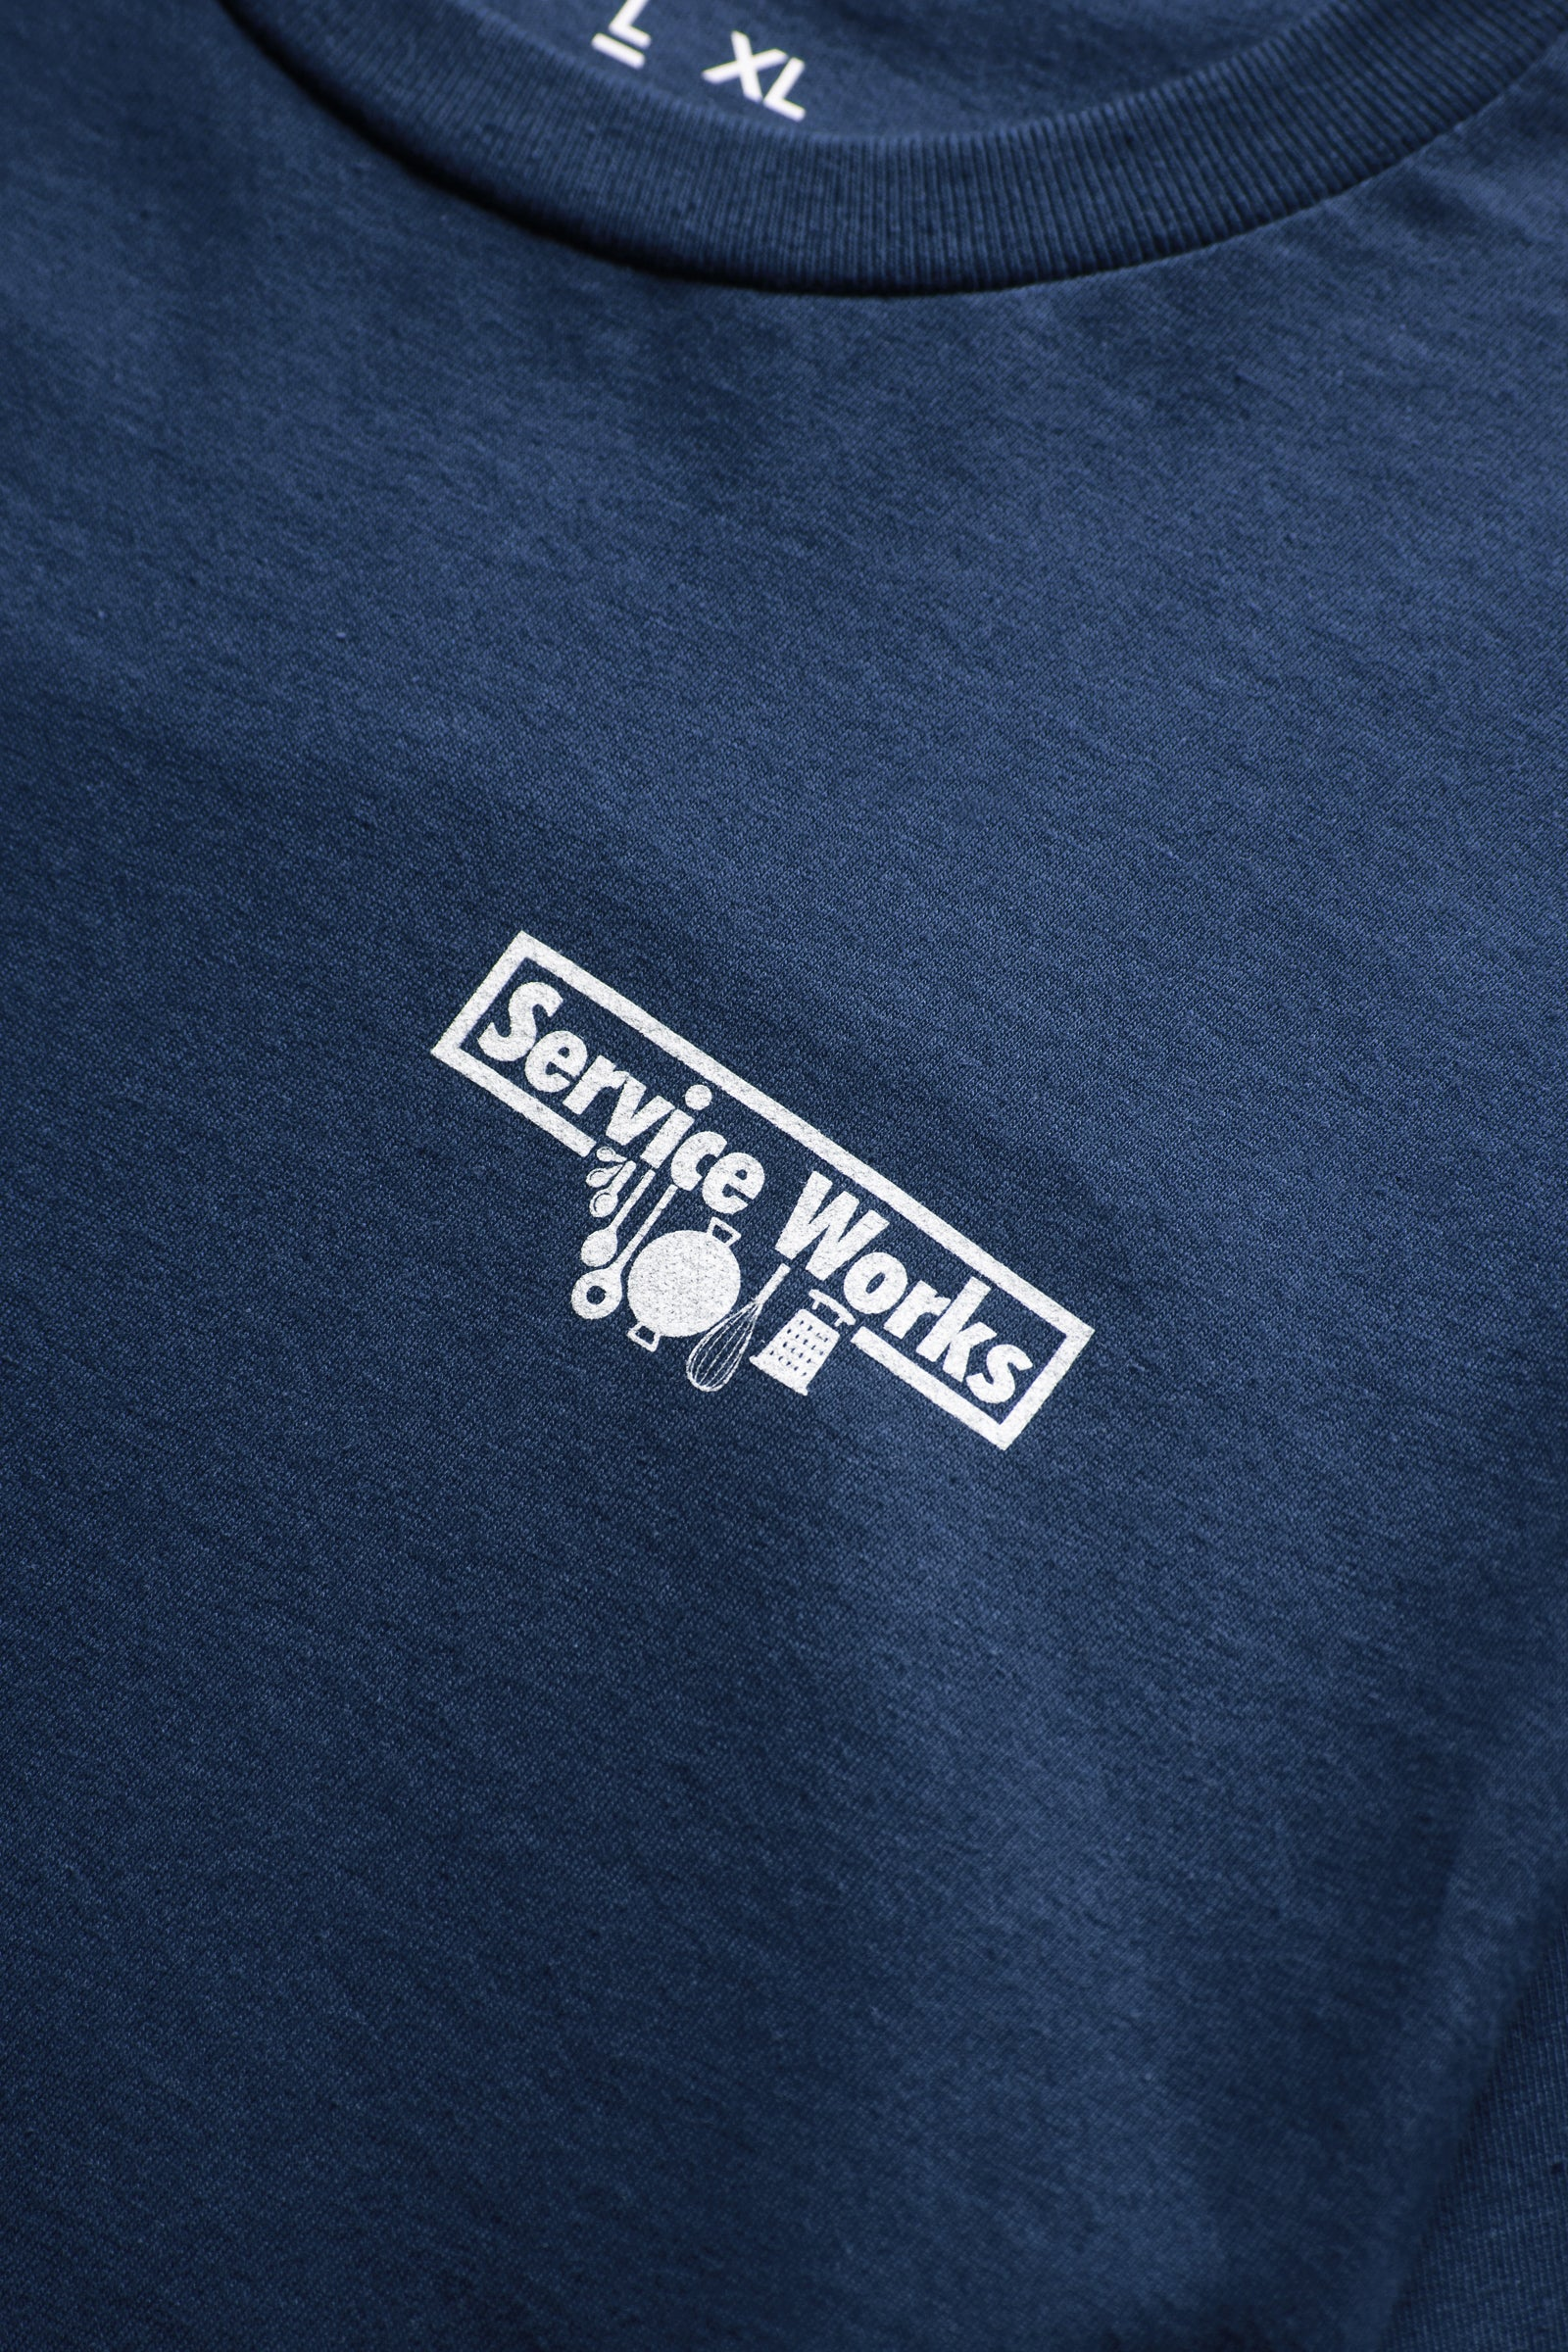 Service Works - Trademark Tee - Navy